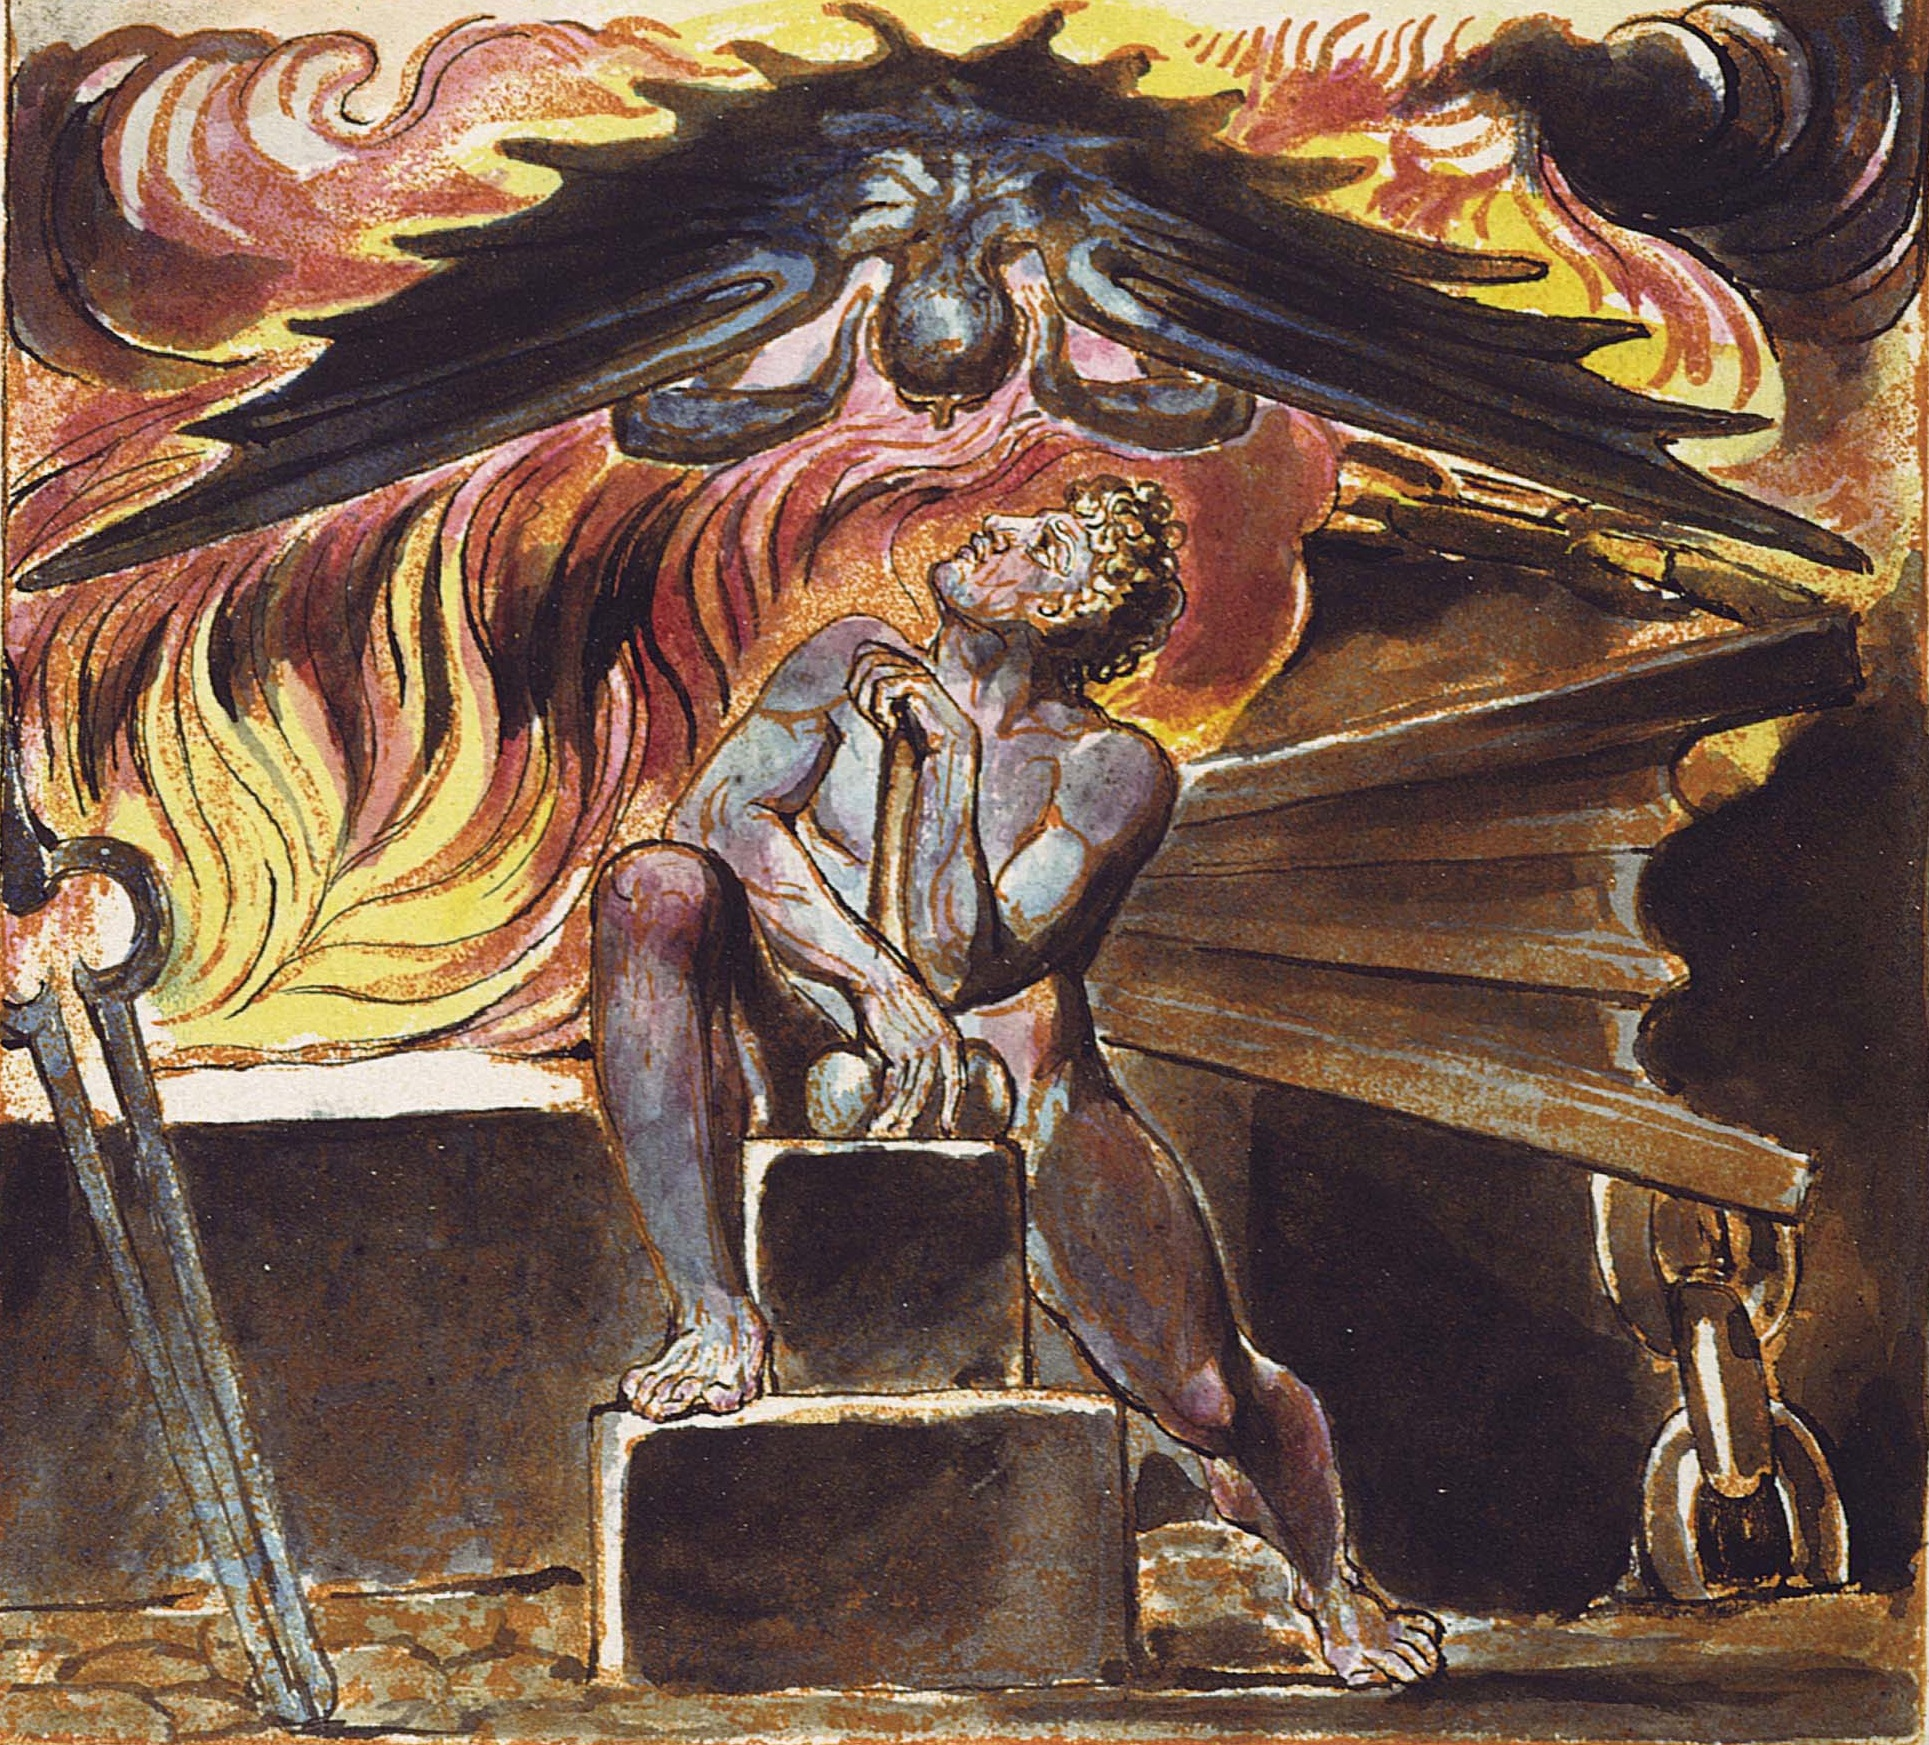 literary tools of expression of william blake The tools you need to write a quality essay or term paper william blake was the son of a london hosier essays related to william blake's song of innocence and experience 1 william blake-- innocence & experience.